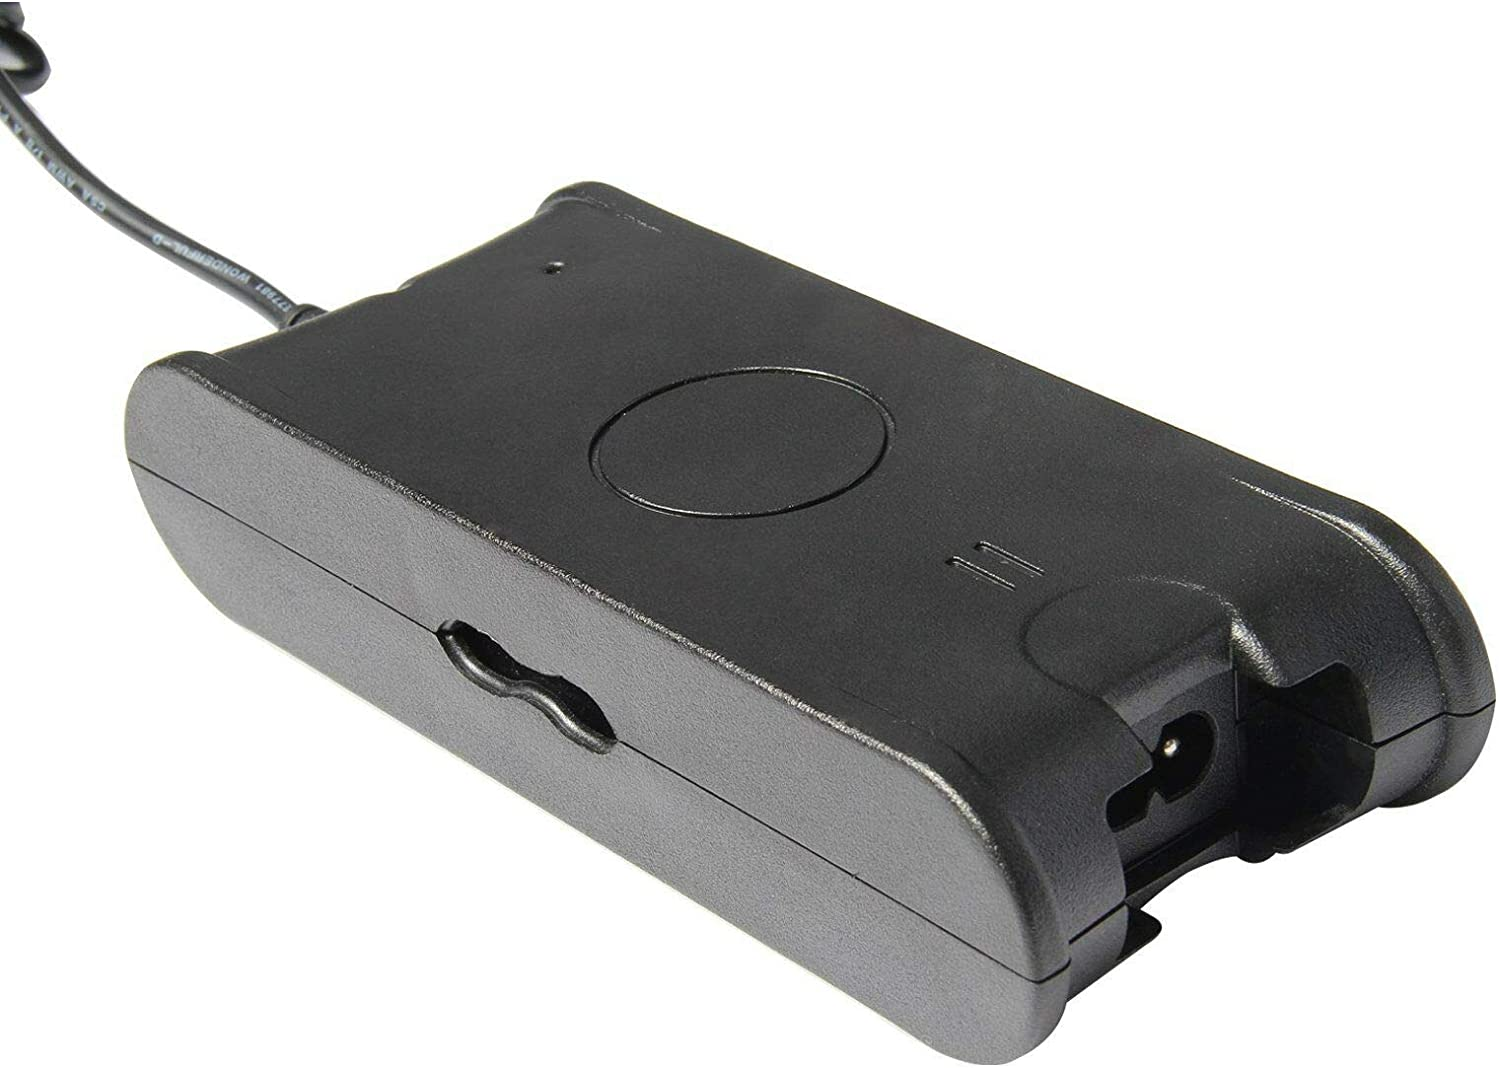 yanw 65W AC Adapter Charger for Dell Inspiron N5030 N5040 N5050 Power Supply PA-12